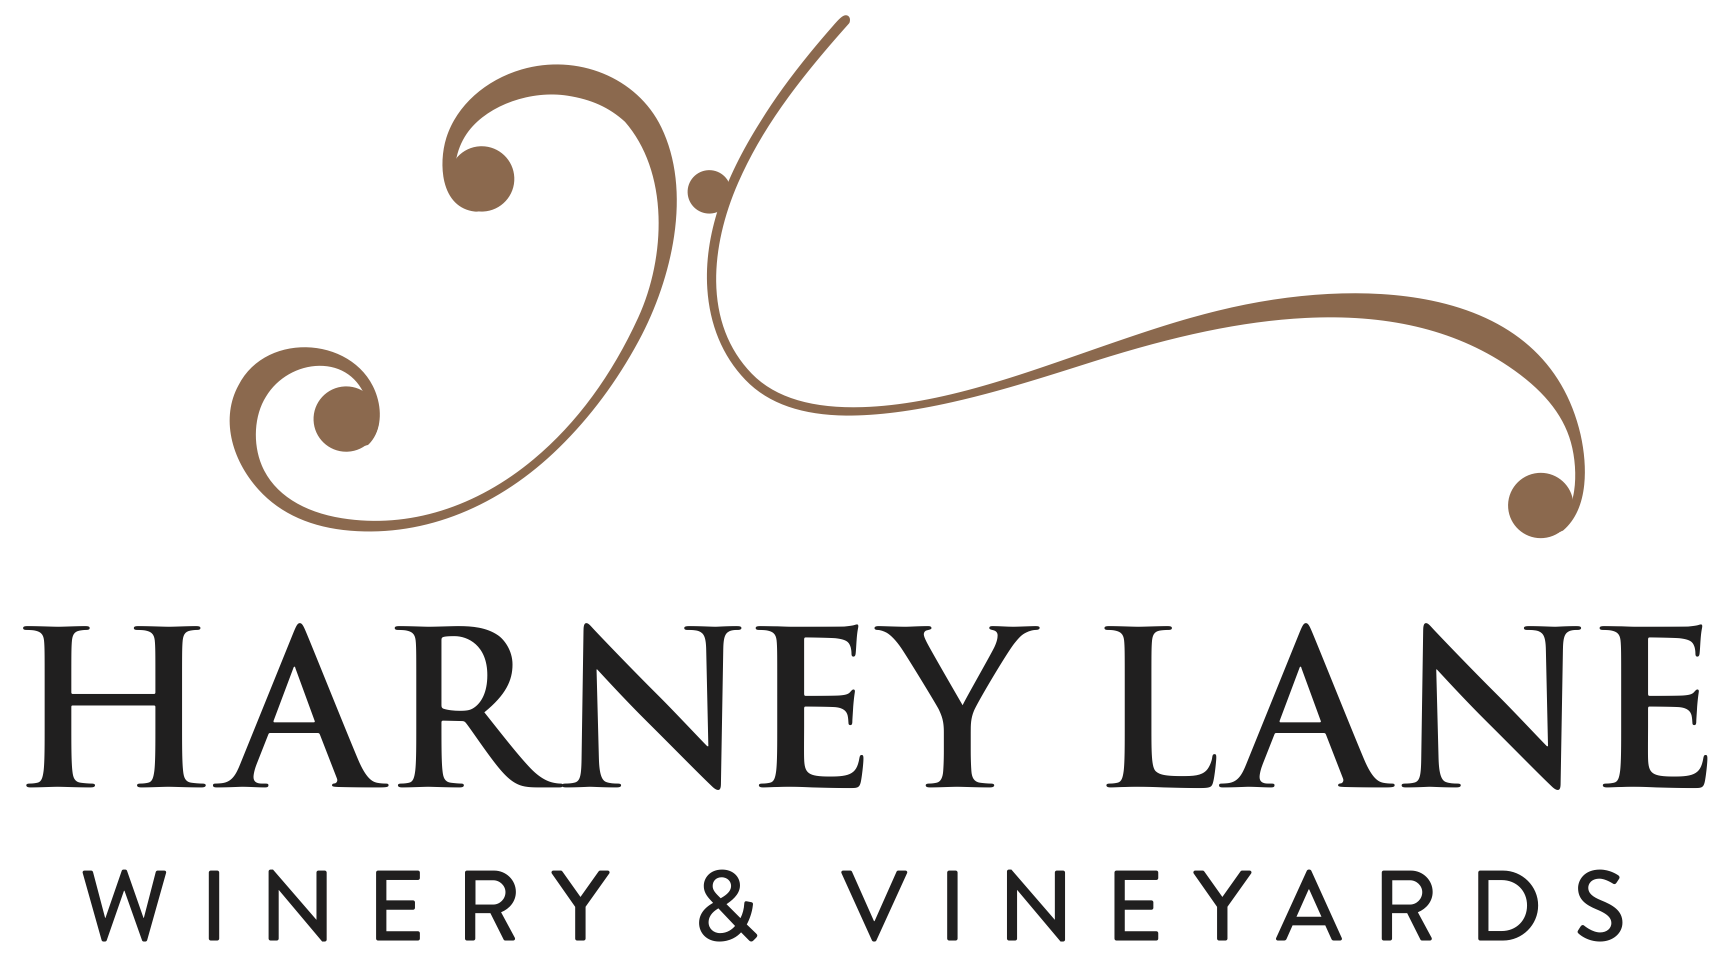 Harney Lane Winery logo